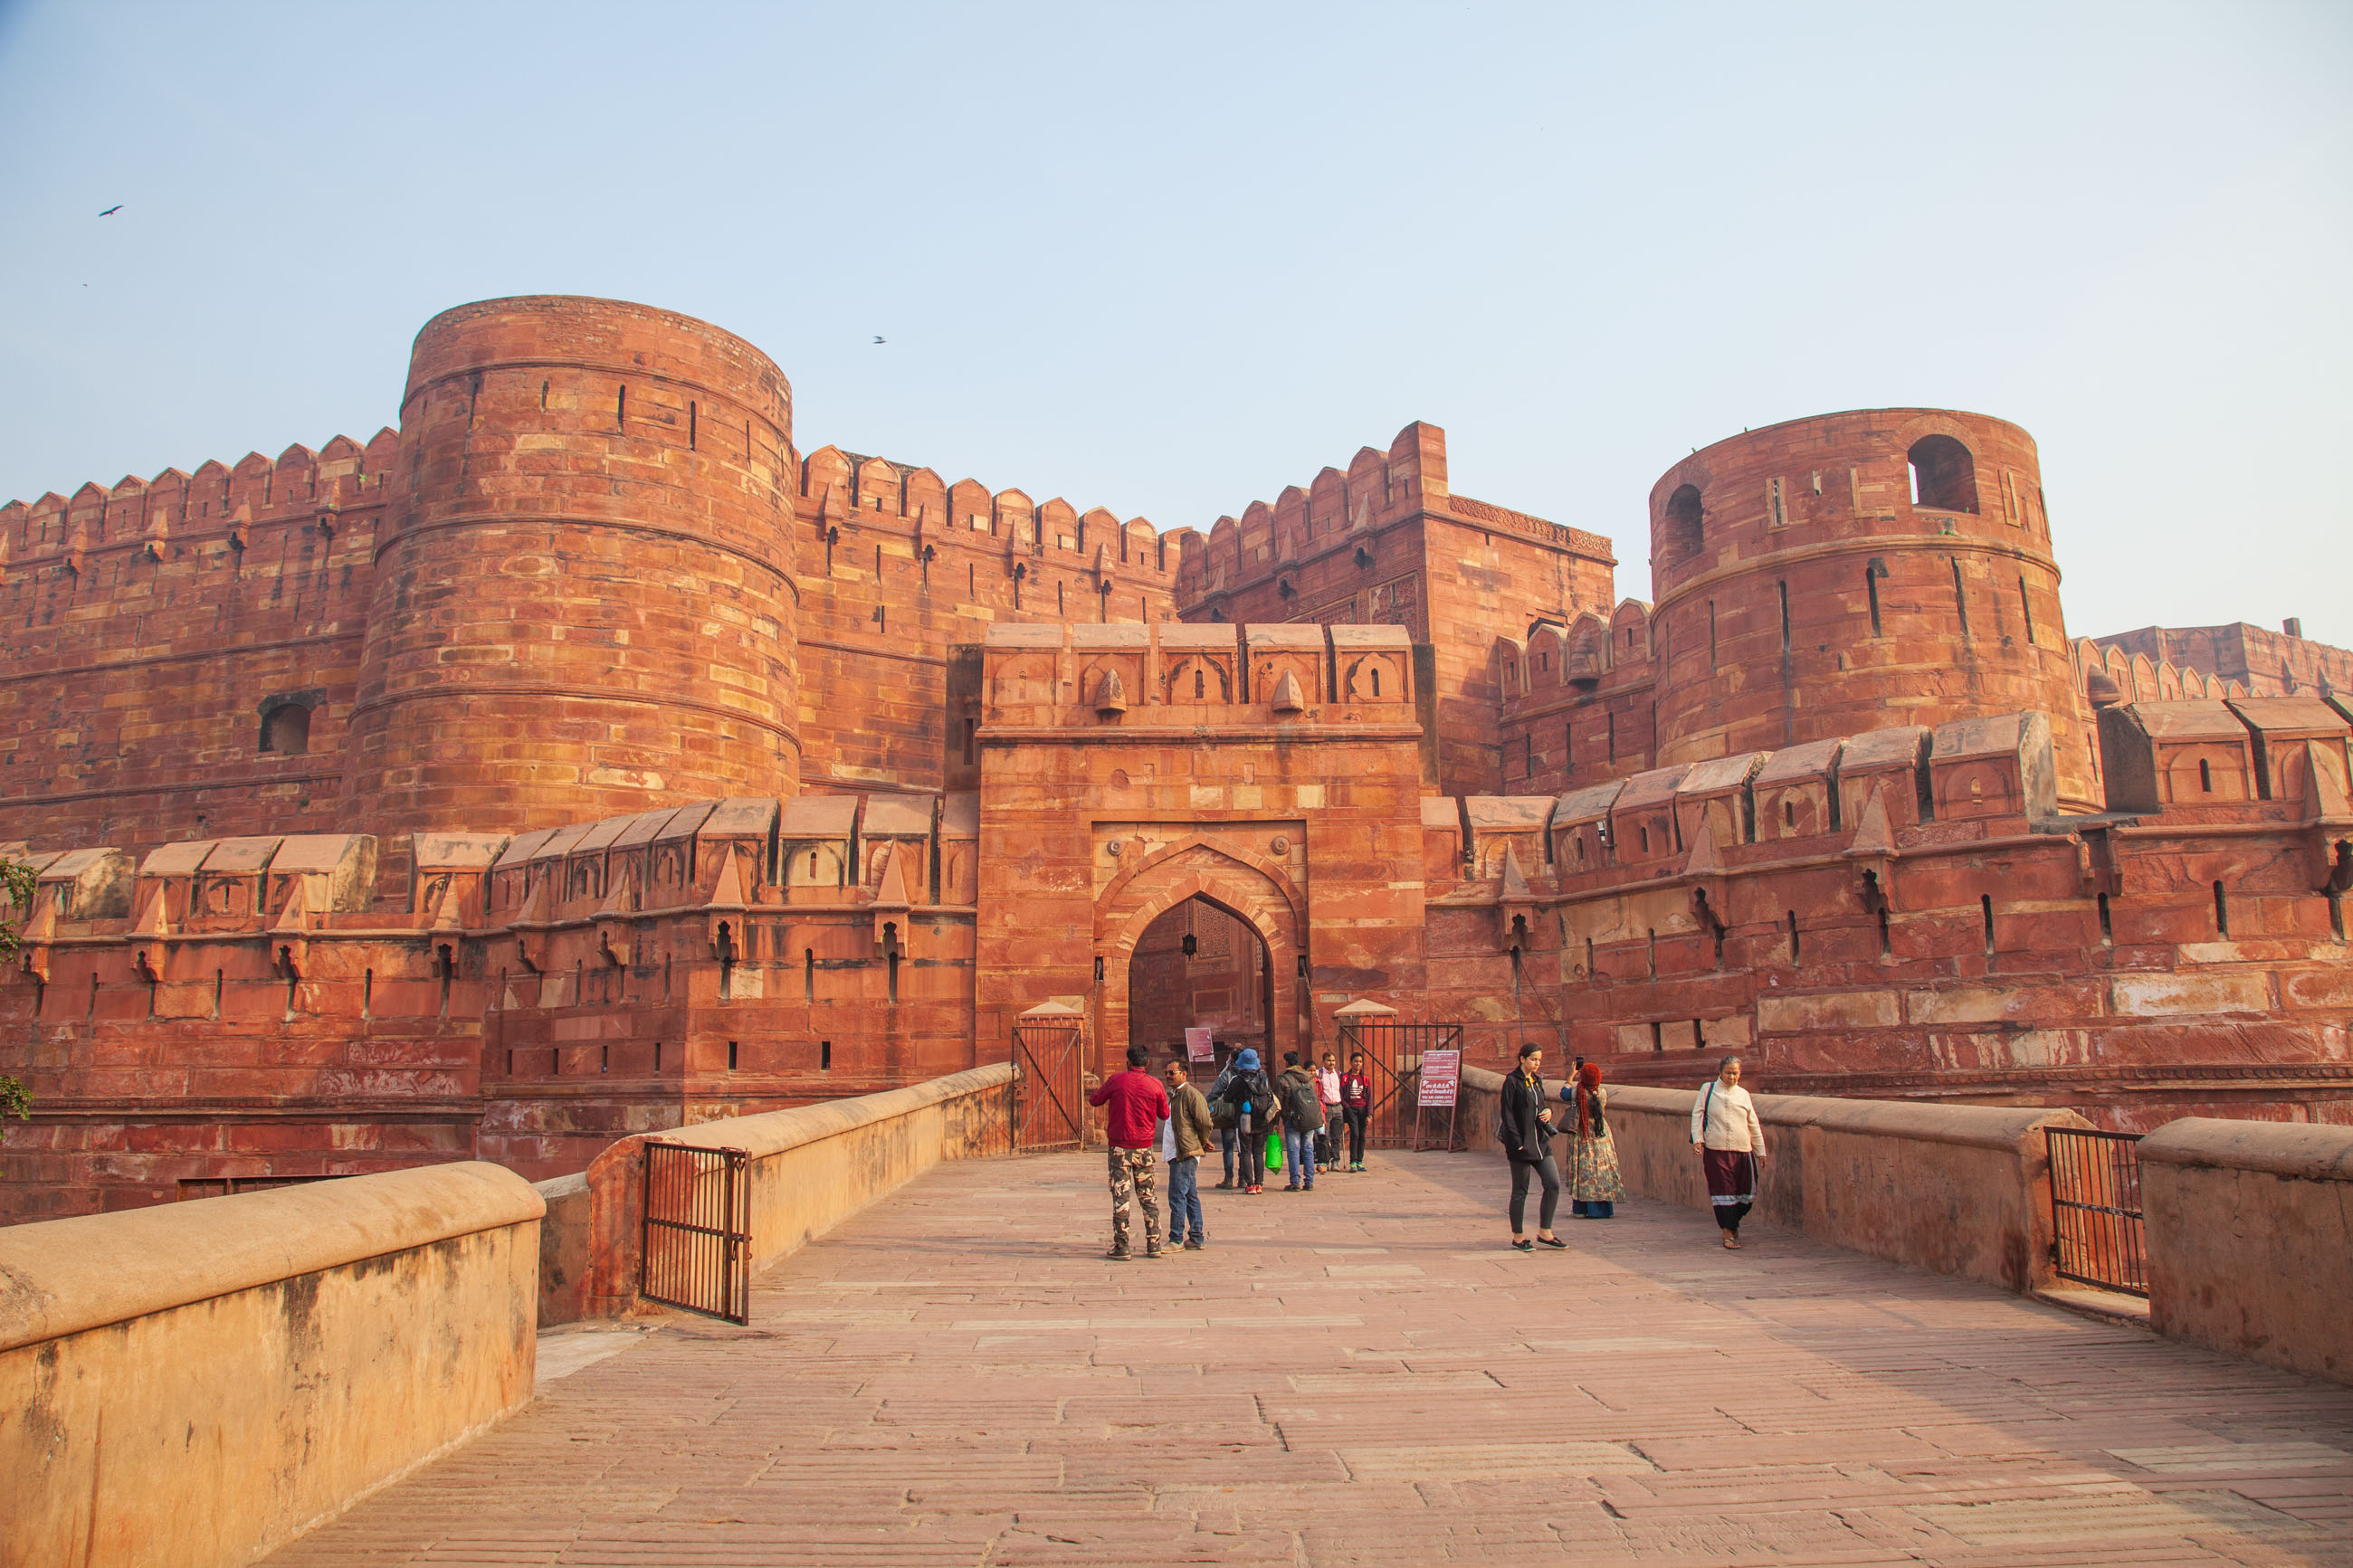 https://bubo.sk/uploads/galleries/4917/samuelklc_india_agra_redfort_img_0074.jpg